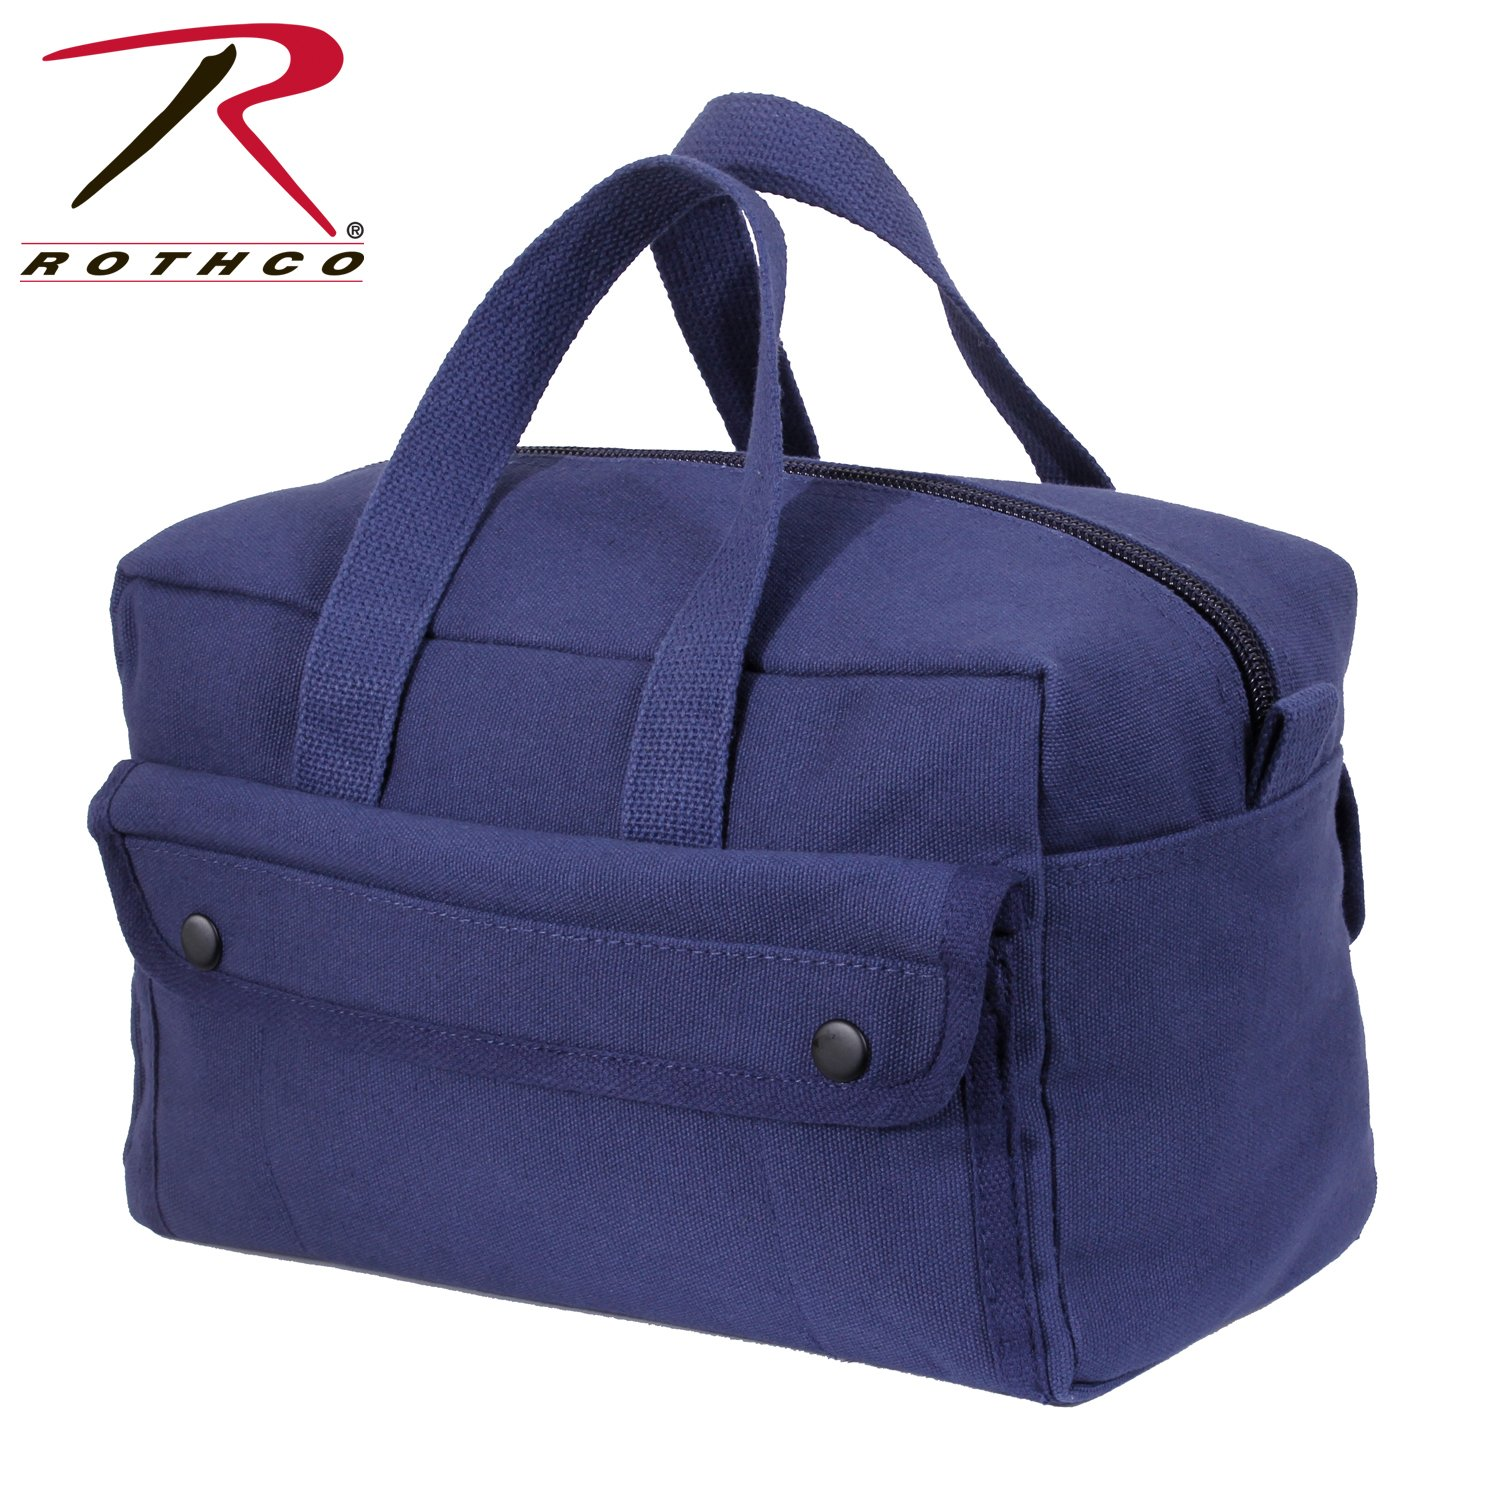 Rothco 9100: Mechanics Navy Blue Tool Bag by Rothco